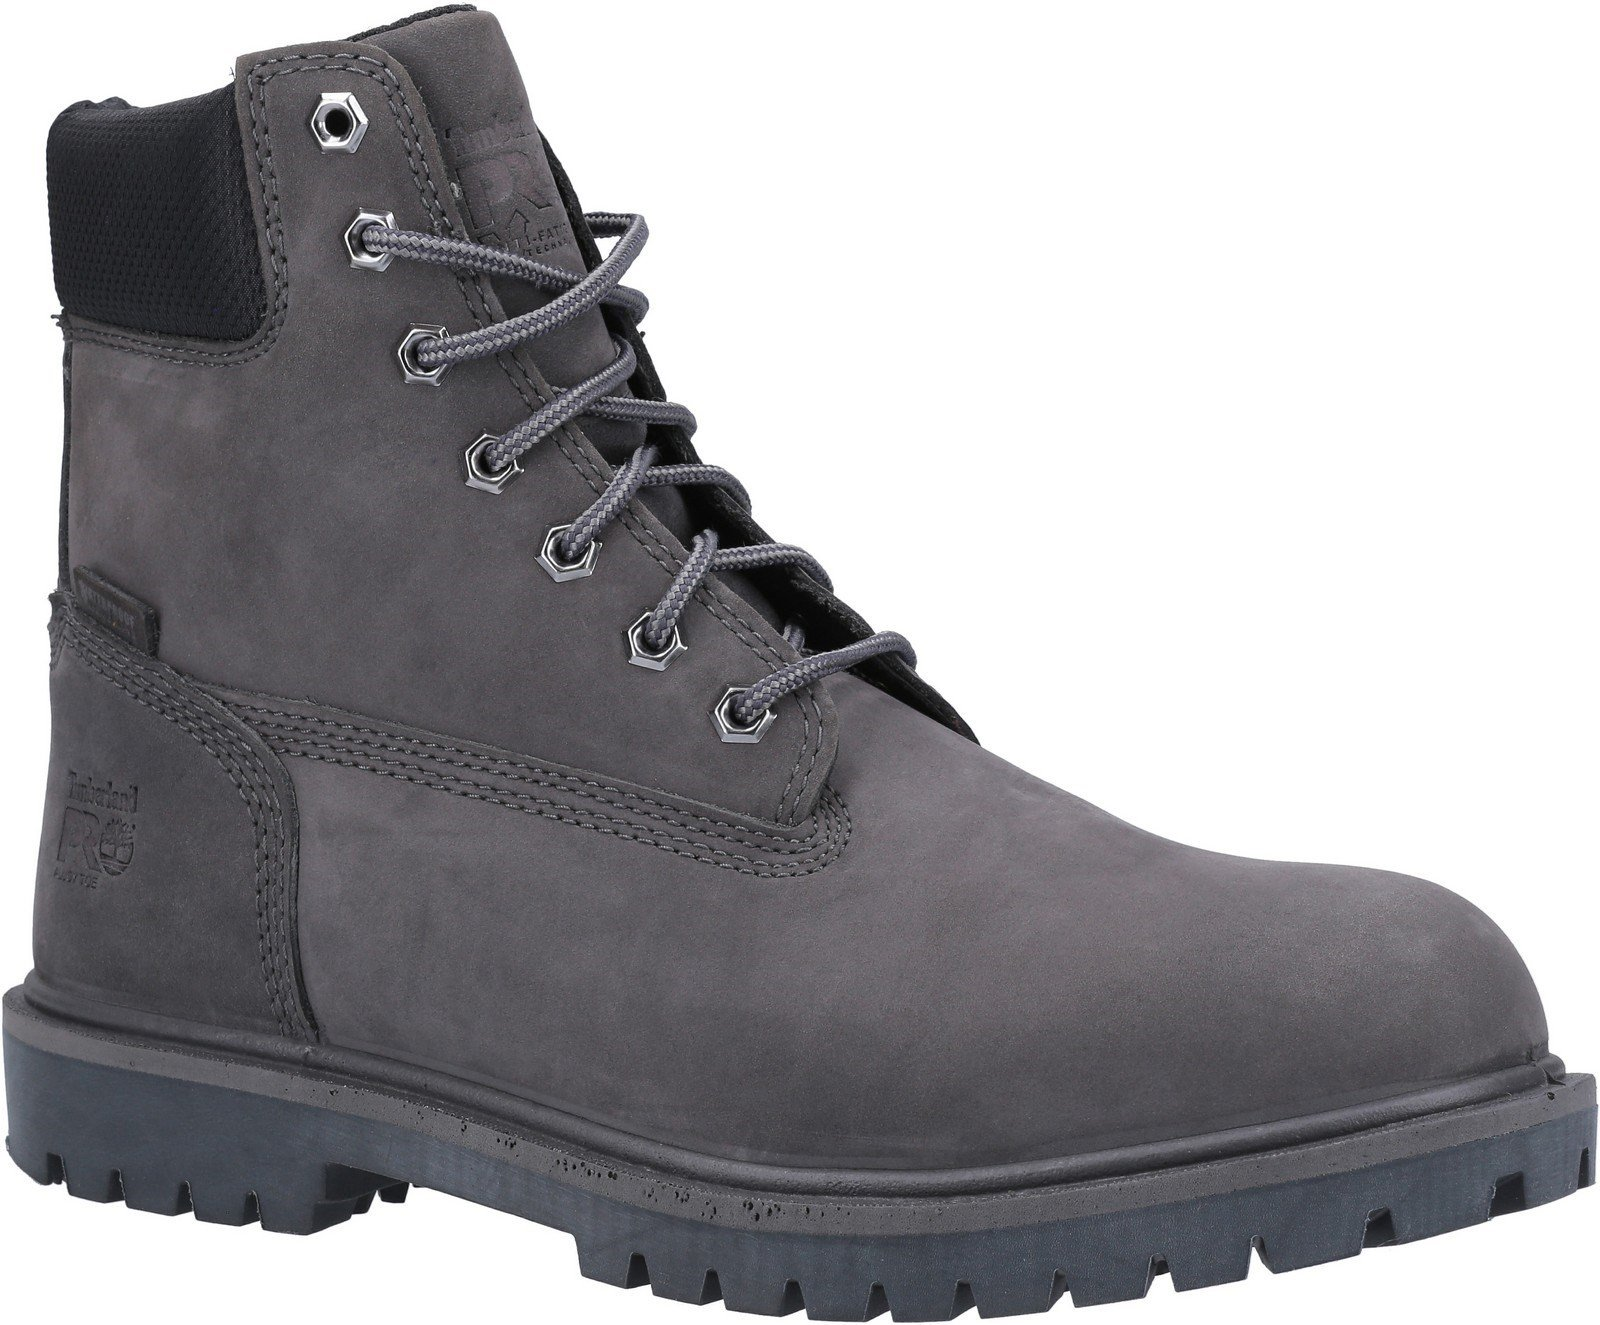 Timberland Pro Men's Iconic Safety Toe Work Boot Various Colours 30949 - Grey 10